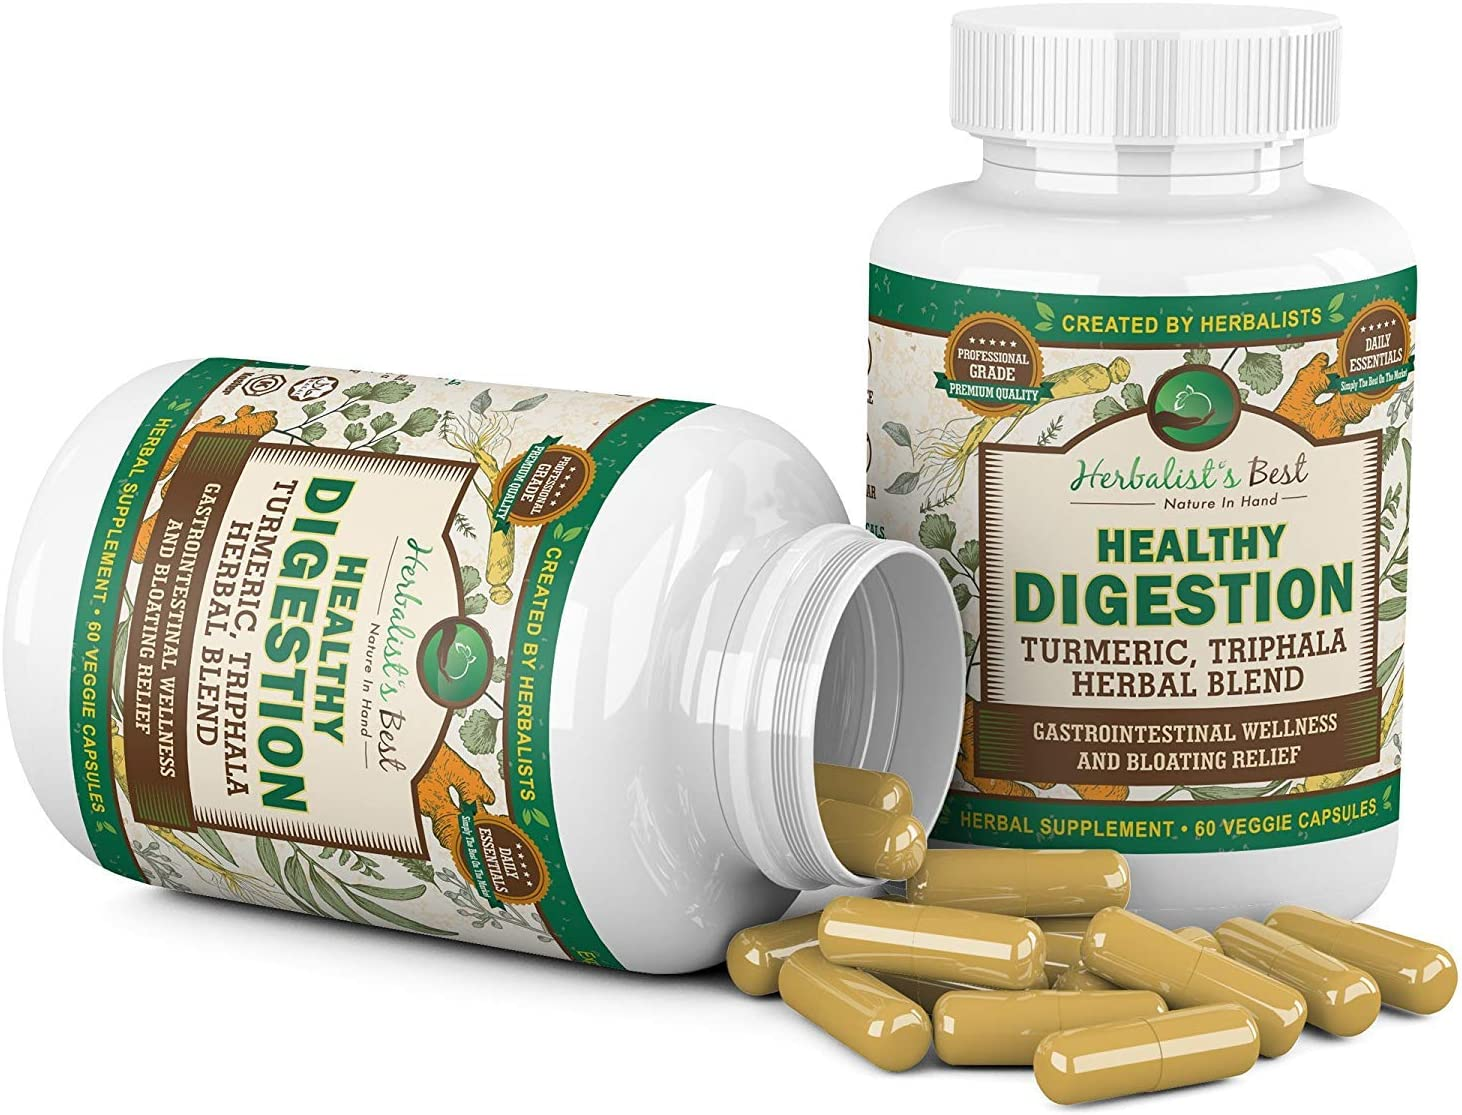 2 Bottles of Healthy Digestion Restores Gut Health I Turmeric Triphala Yellow Dock Aid Colon Cleanse Liver Detox Arthritis Bloating Gas I Probiotic Alternative I Boost GI Tract by Herbalist s Best